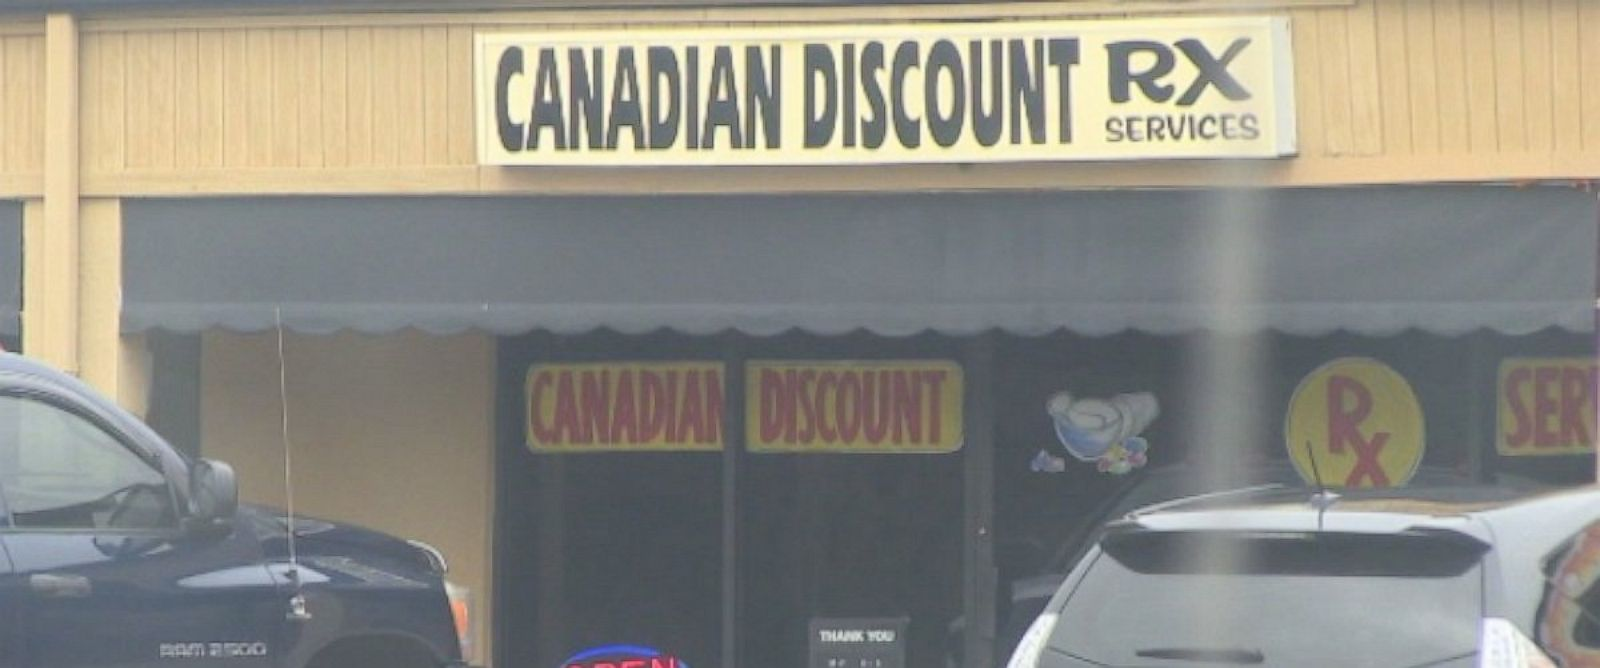 An image of the Canadian Discount Rx storefront in Belleview, Florida.